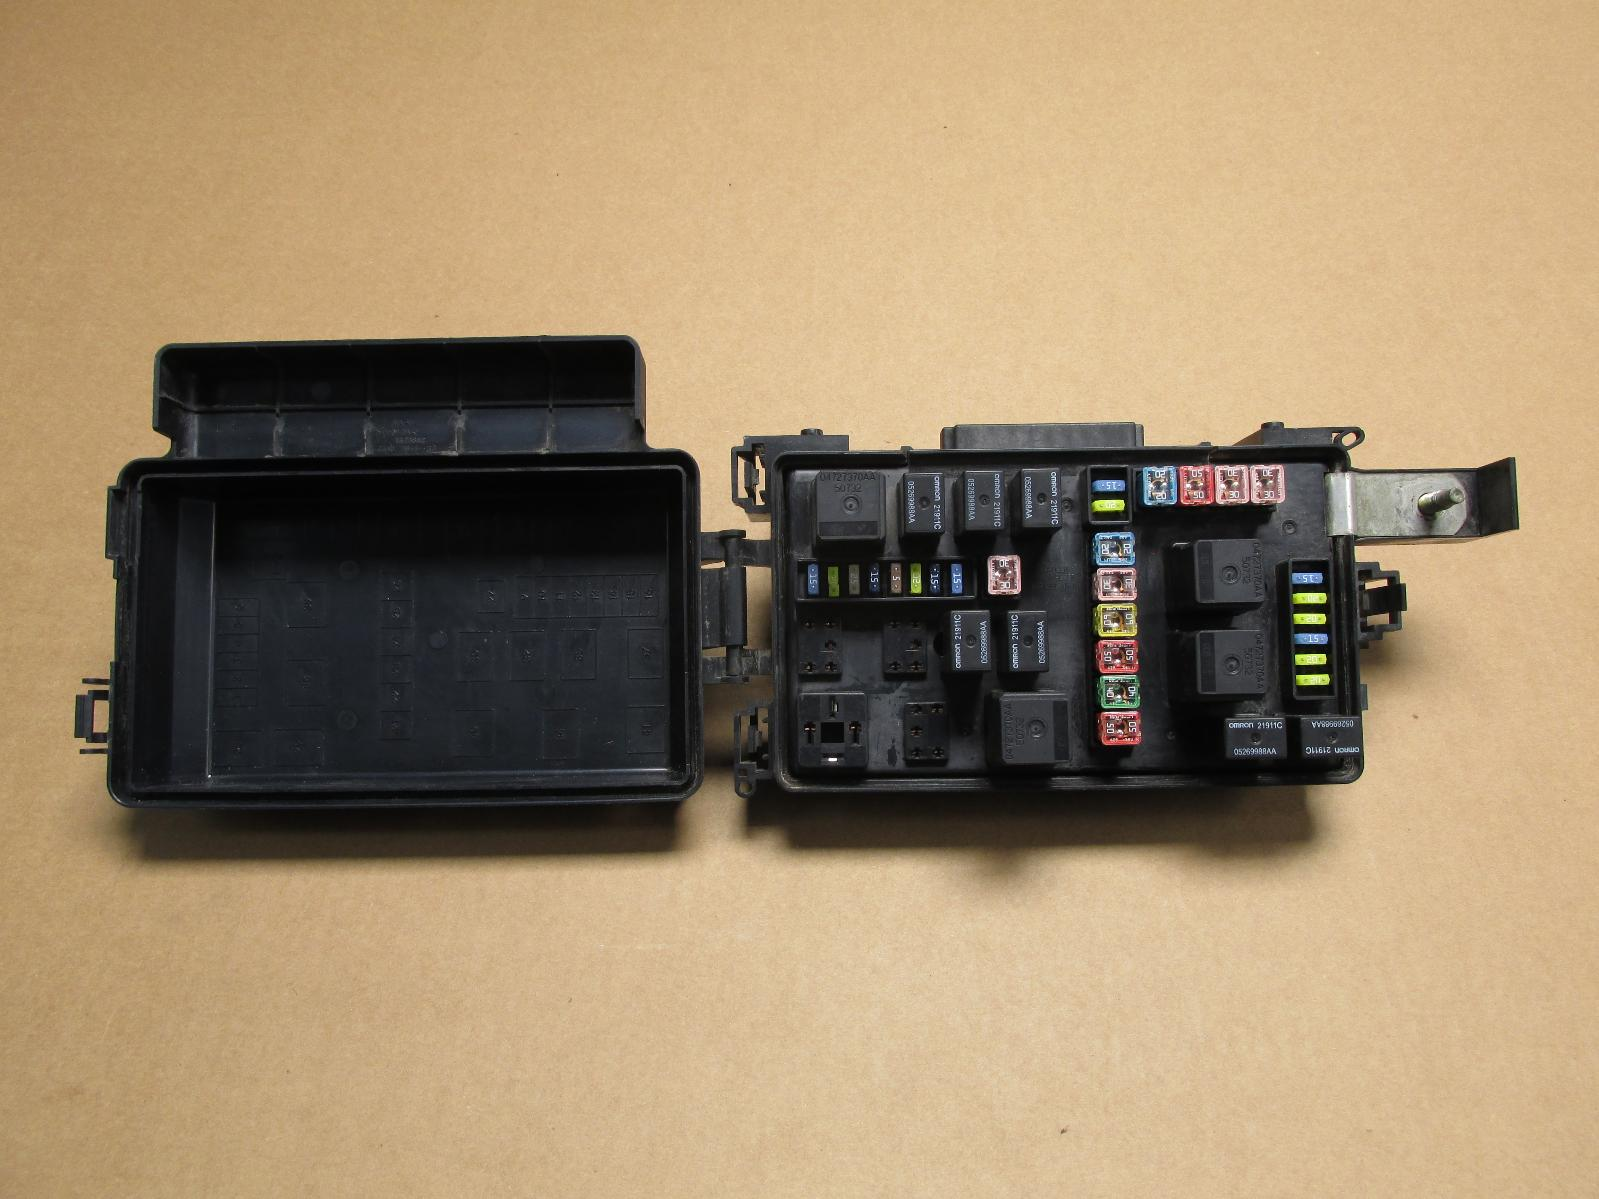 Fuse Box For Dodge Charger 2007 : Dodge charger fuse box auto diagram